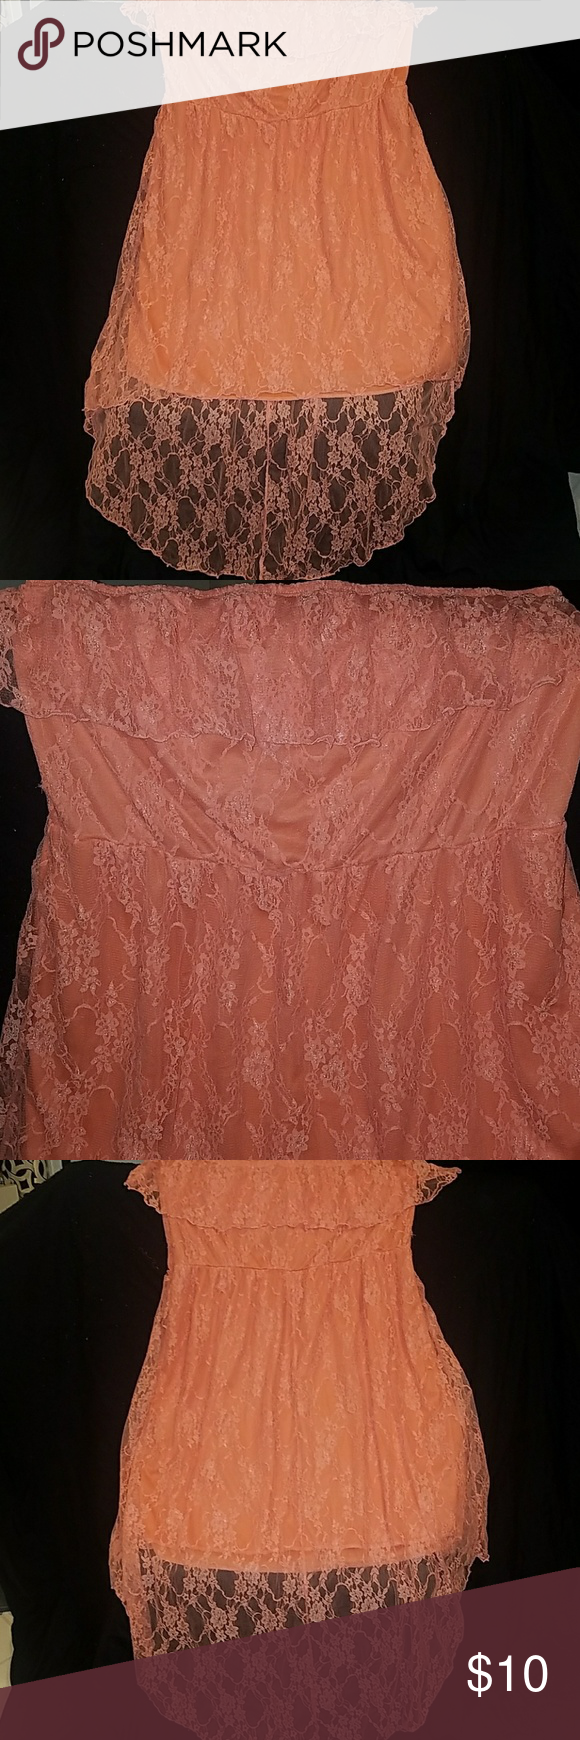 Lacey high low dress Strapless Smoke   Pet free home urban rose Dresses  High Low 11544ea88